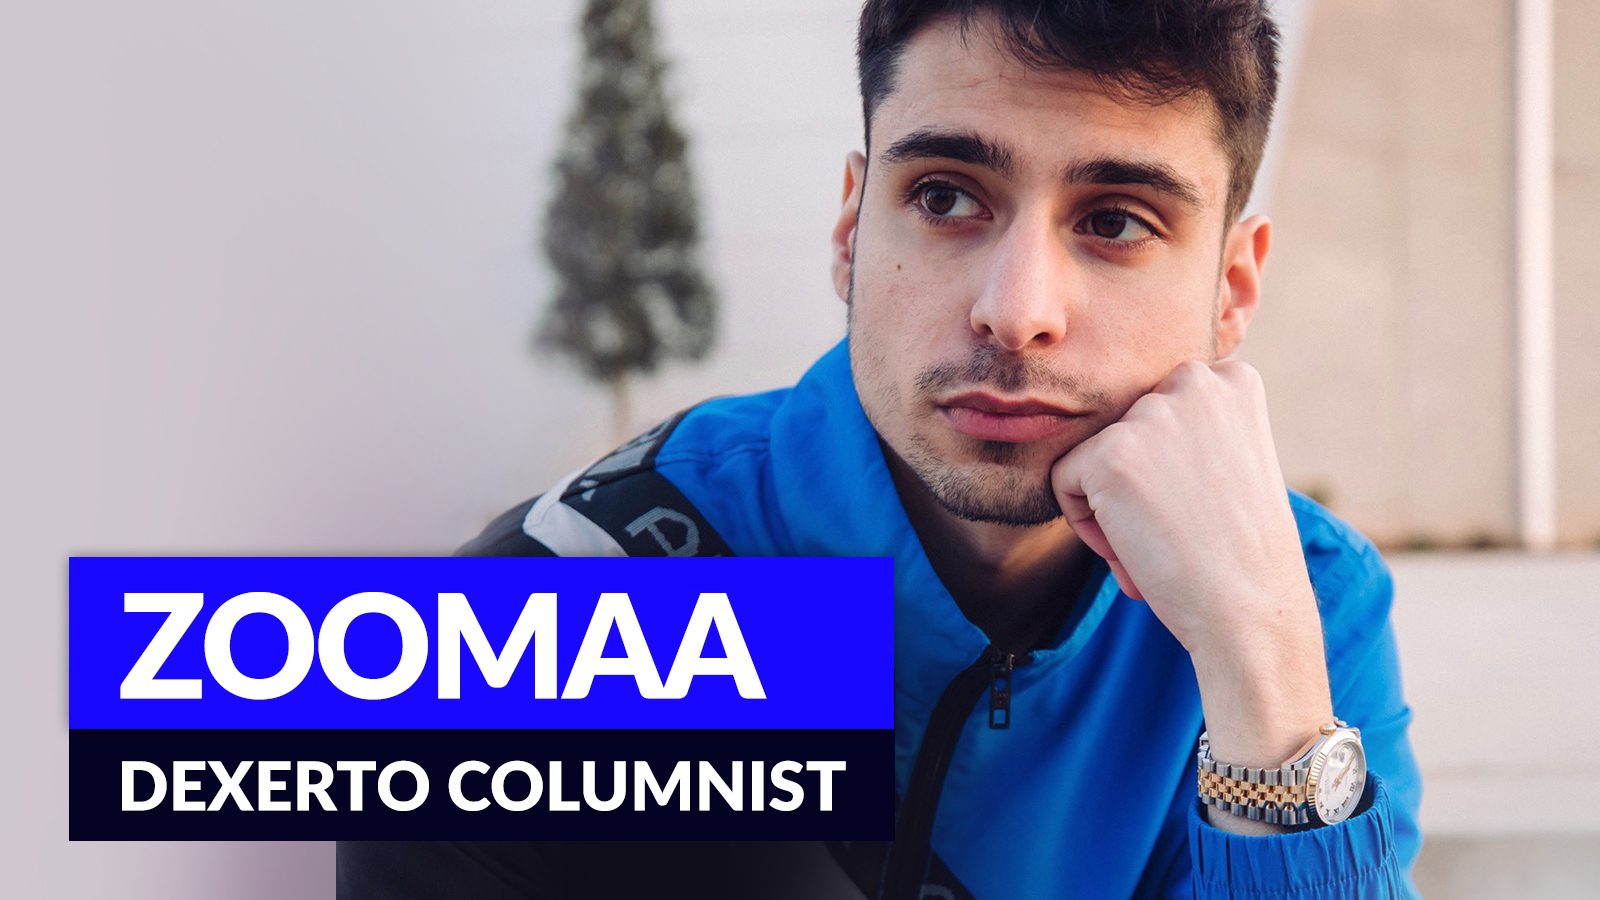 tommy zoomaa paparatto